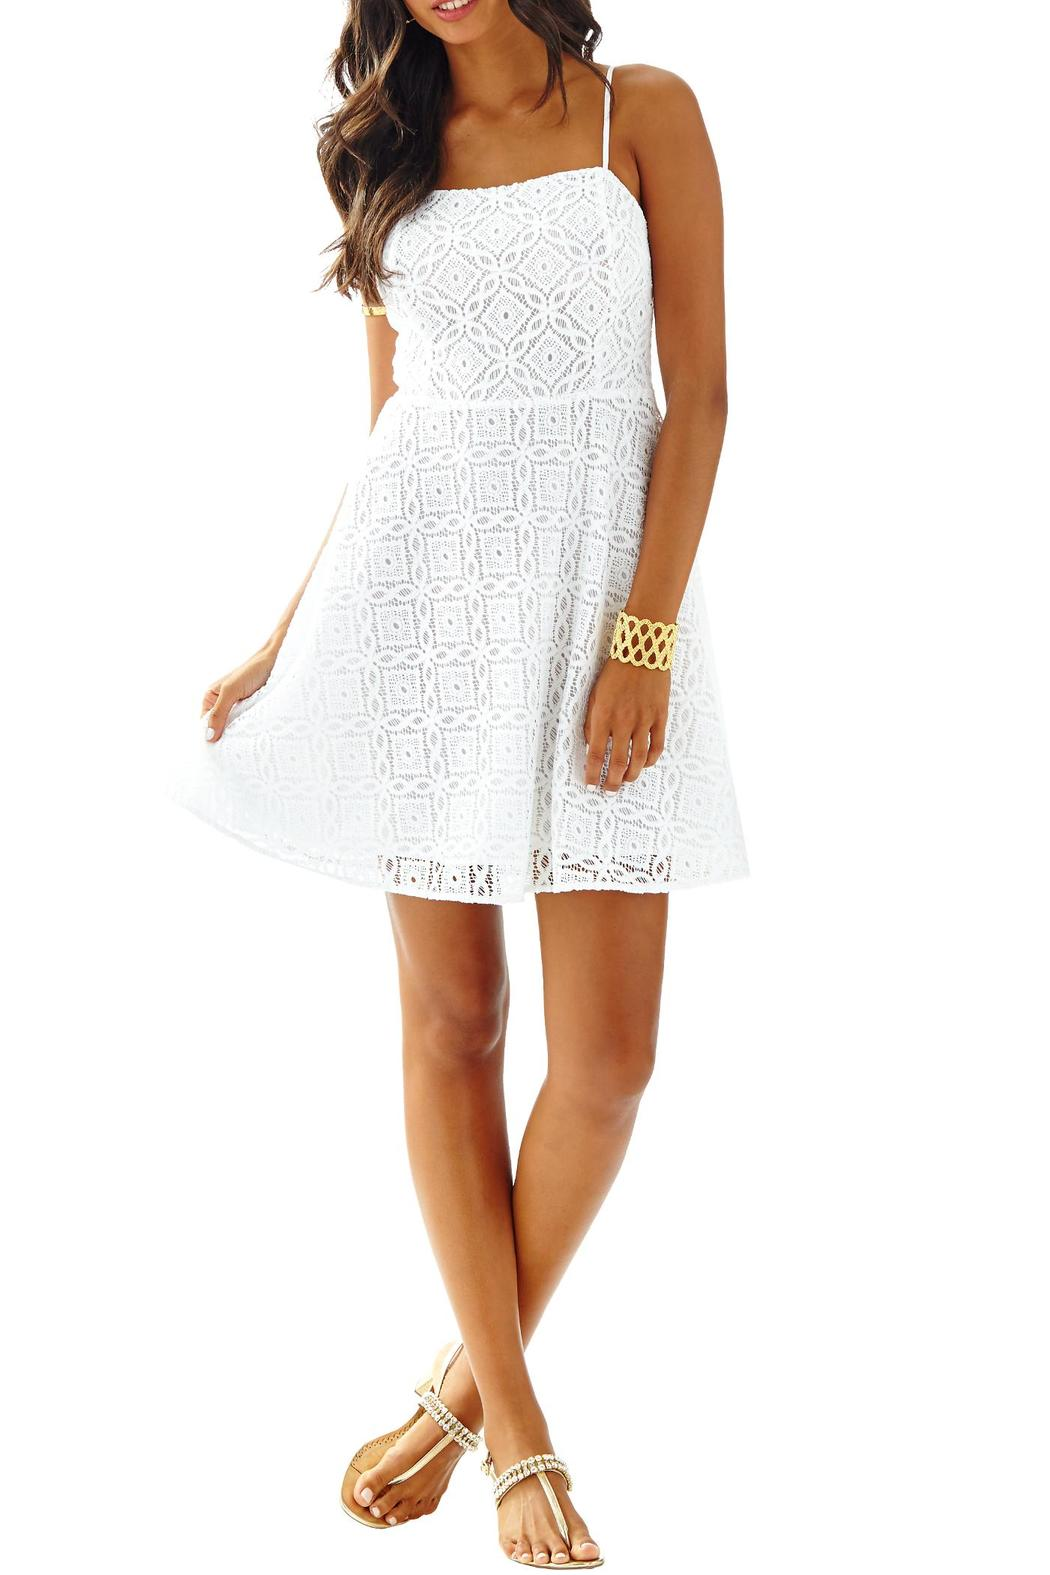 Lilly Pulitzer Jennilee Lace Sundress From Sandestin Golf And Beach